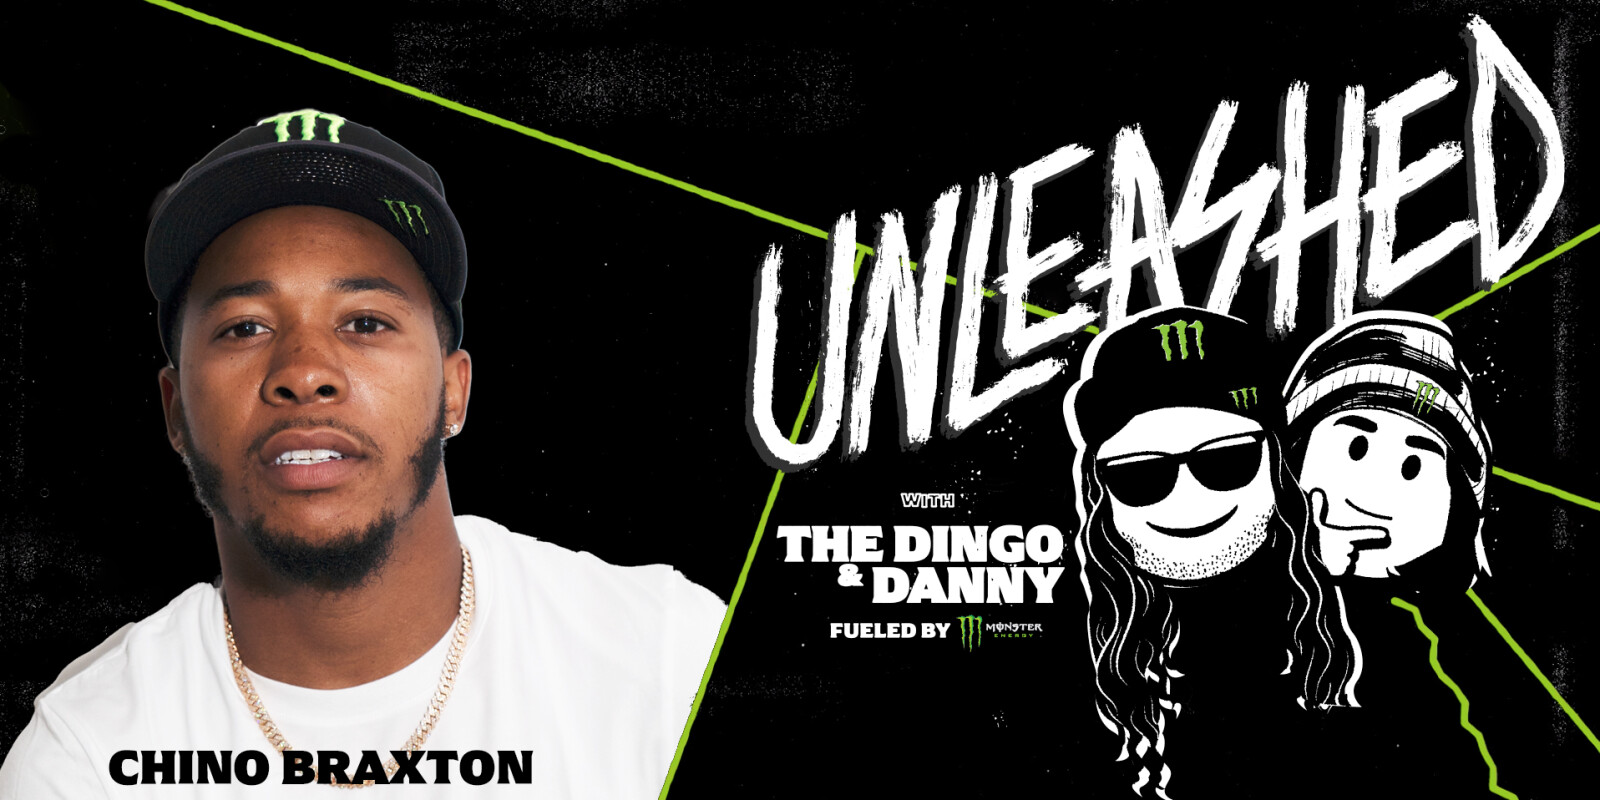 Unleashed Podcast With the Dingo and Special Guest Host Ash Hodges Fueled by Monster Energy featuring Chino Braxton